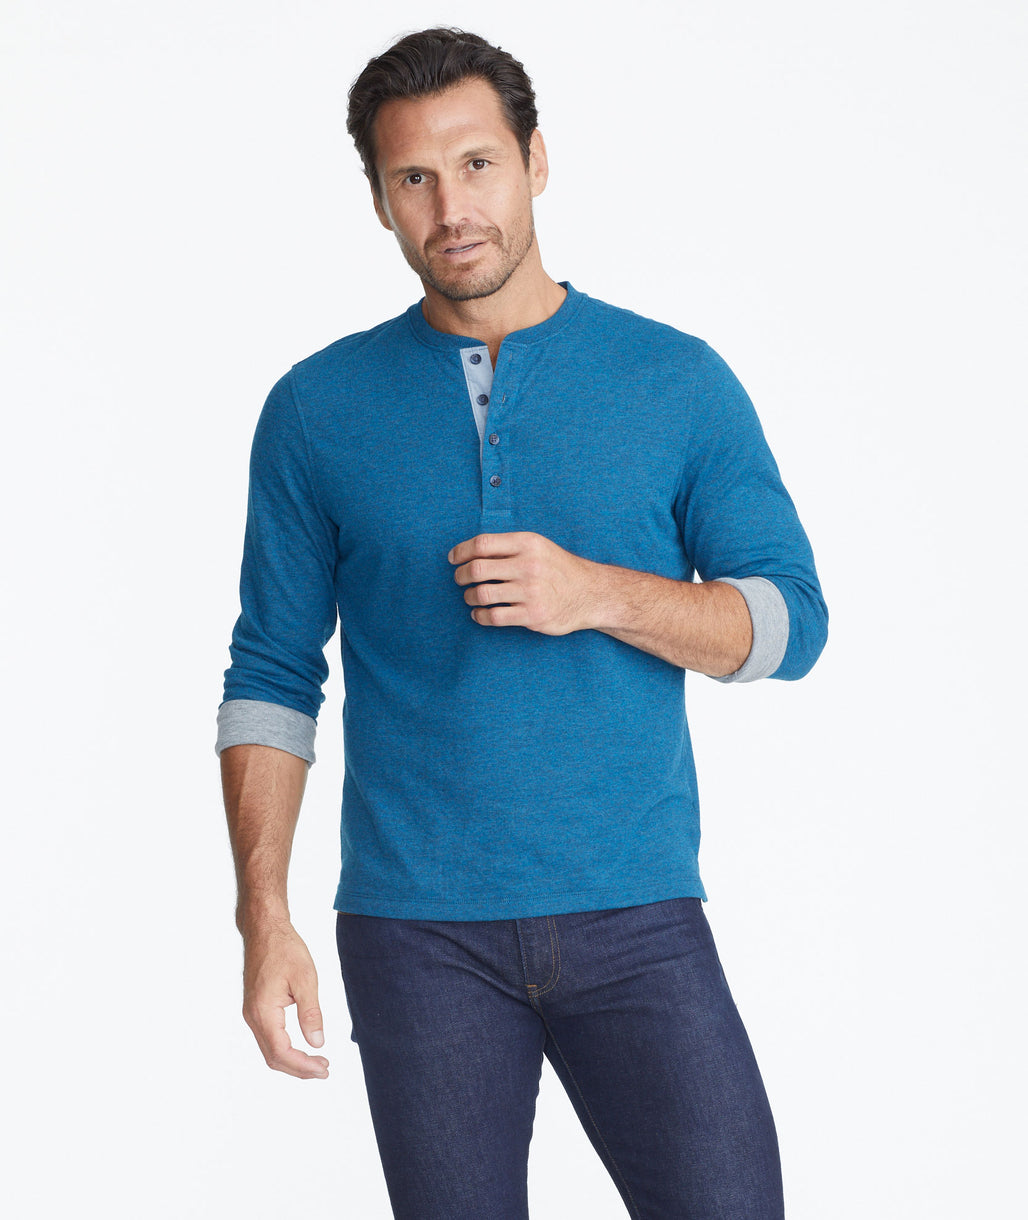 Model wearing a Bright Blue Double-Faced Long-Sleeve Henley